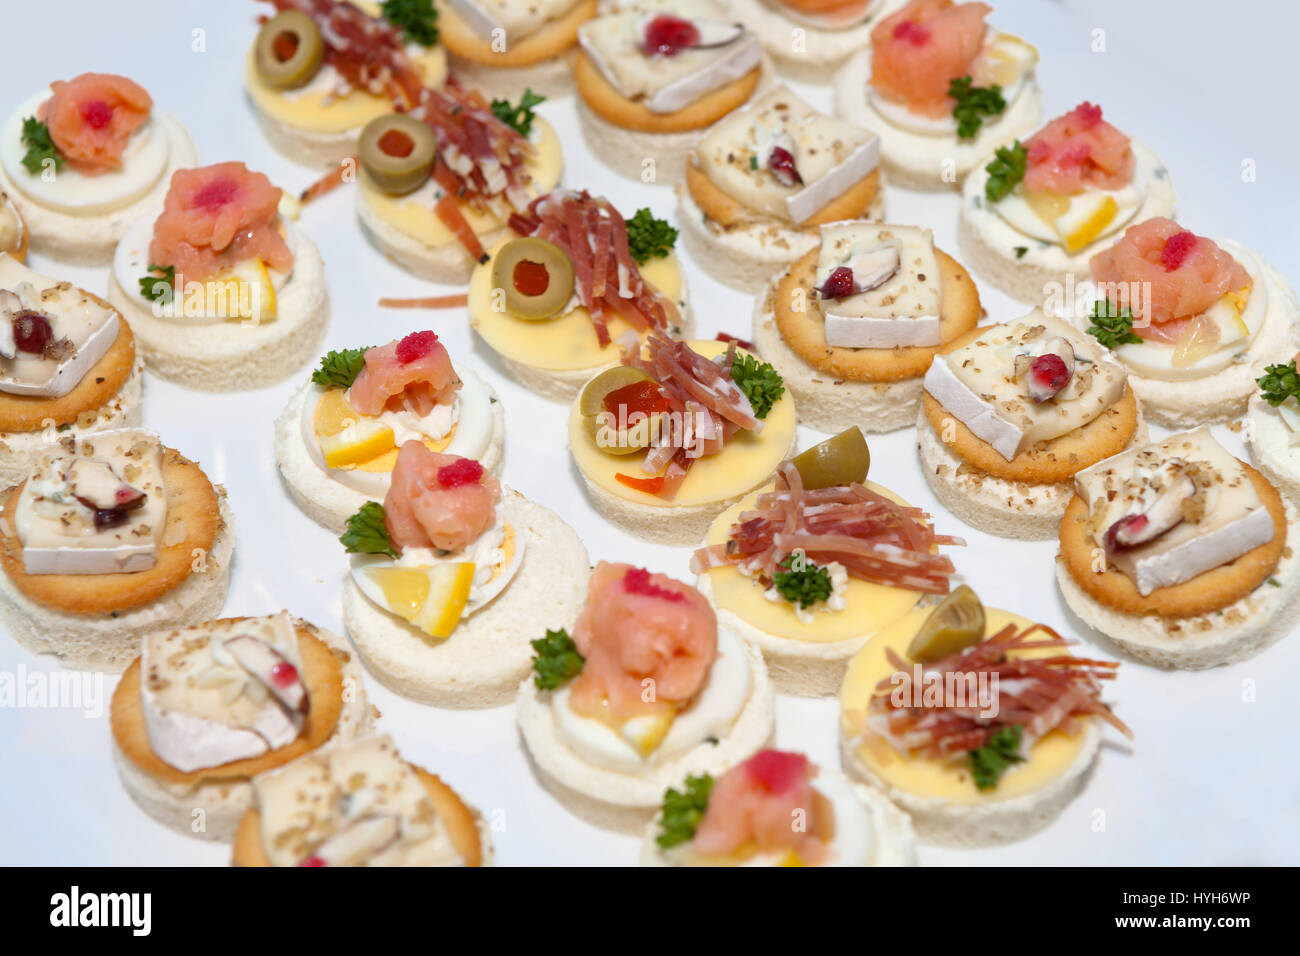 Assorted delicious canapes - Stock Image